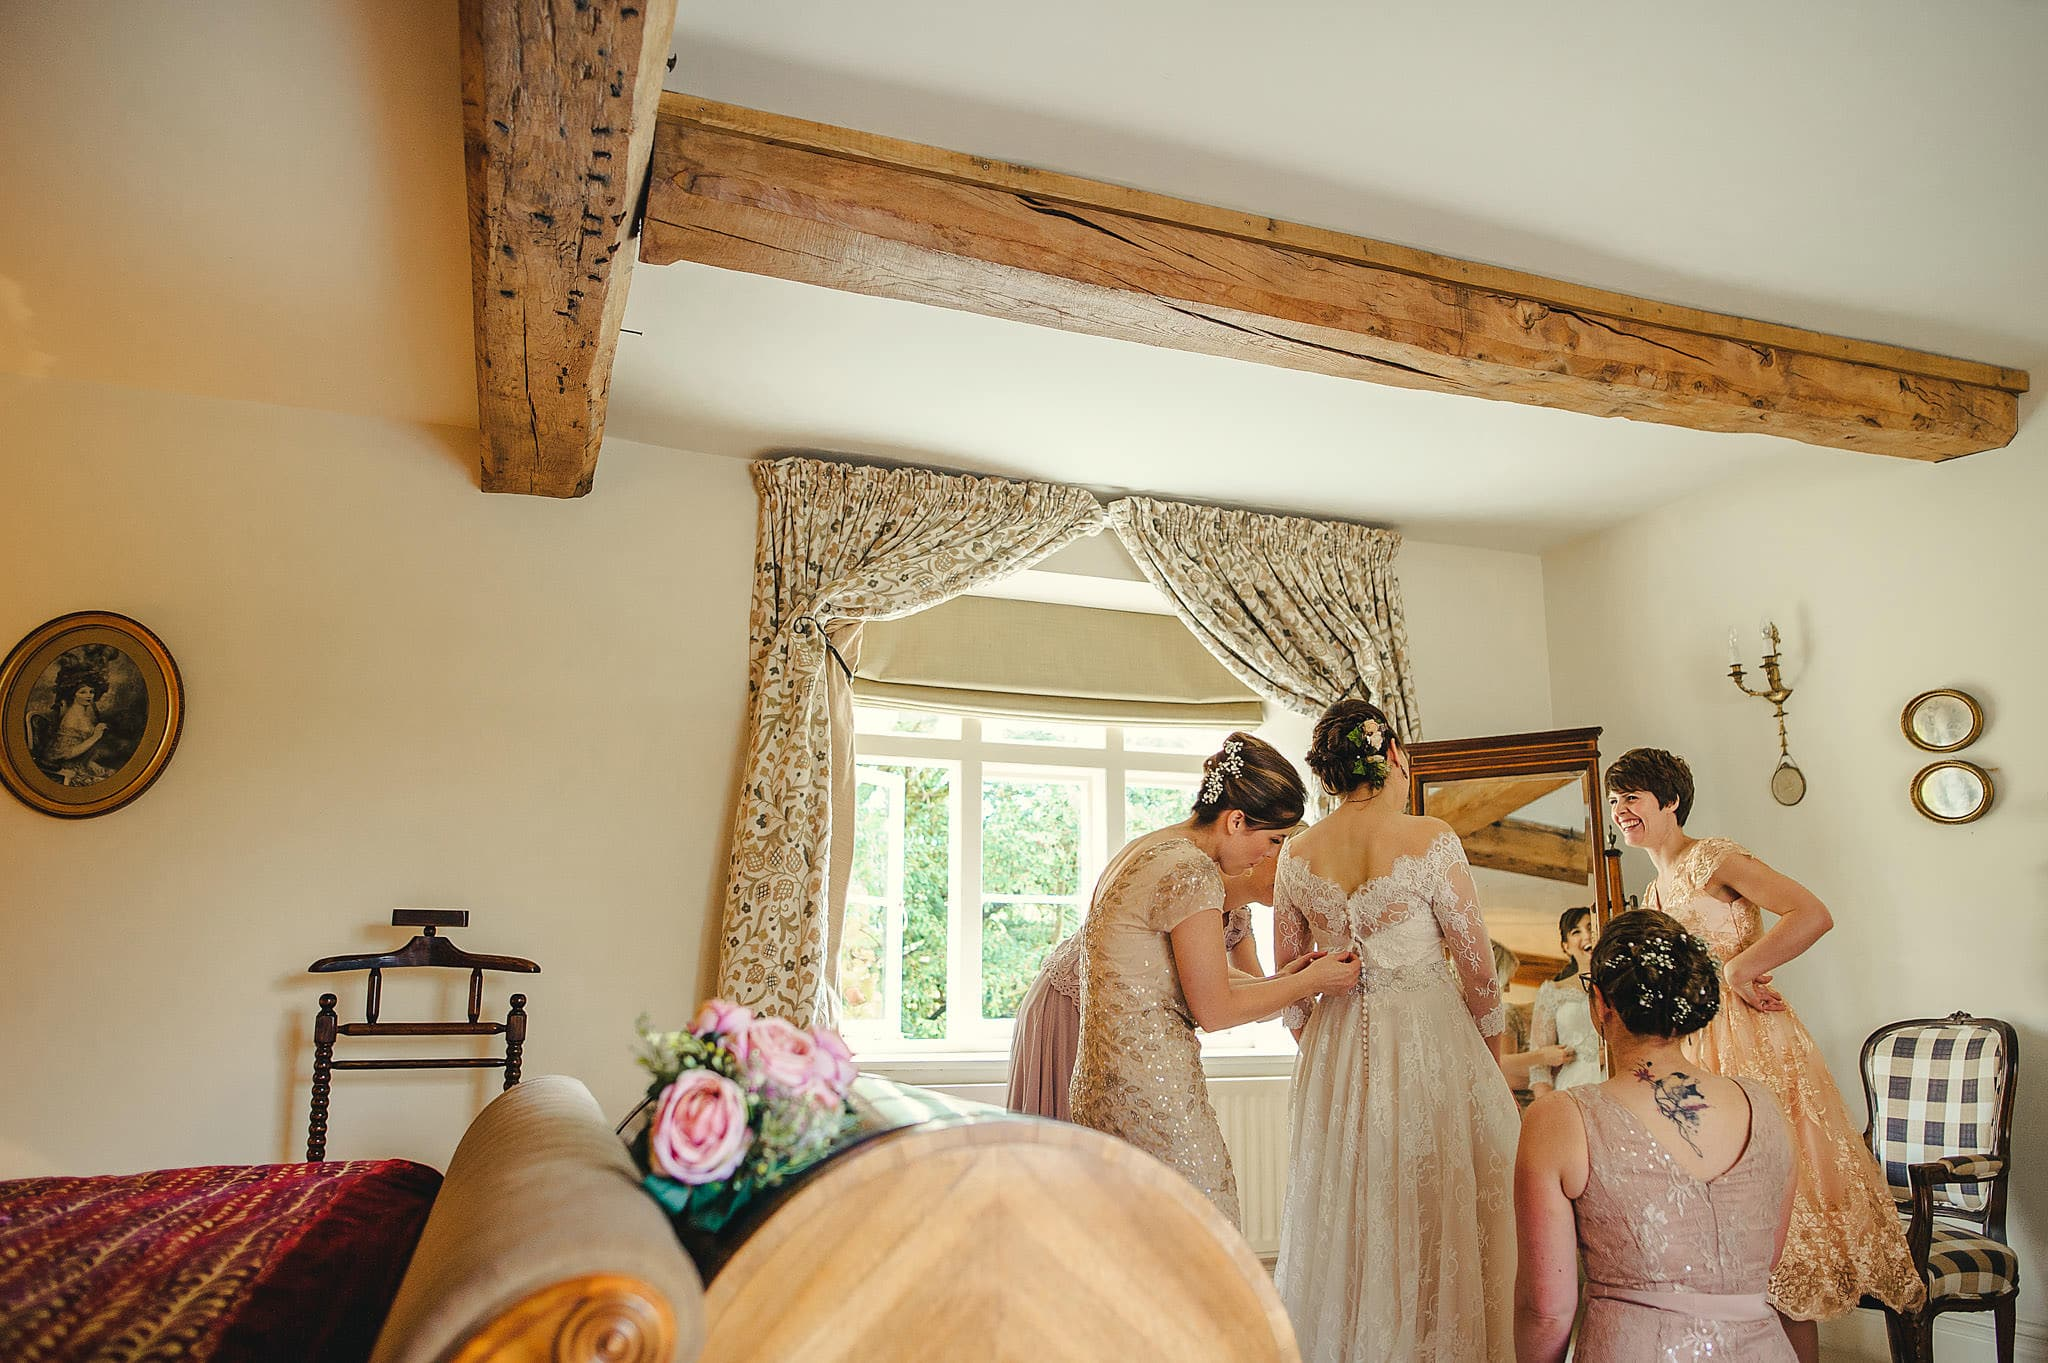 dewsall court wedding photography herefordshire 59 - Dewsall Court wedding photography Herefordshire | Laura + Alex